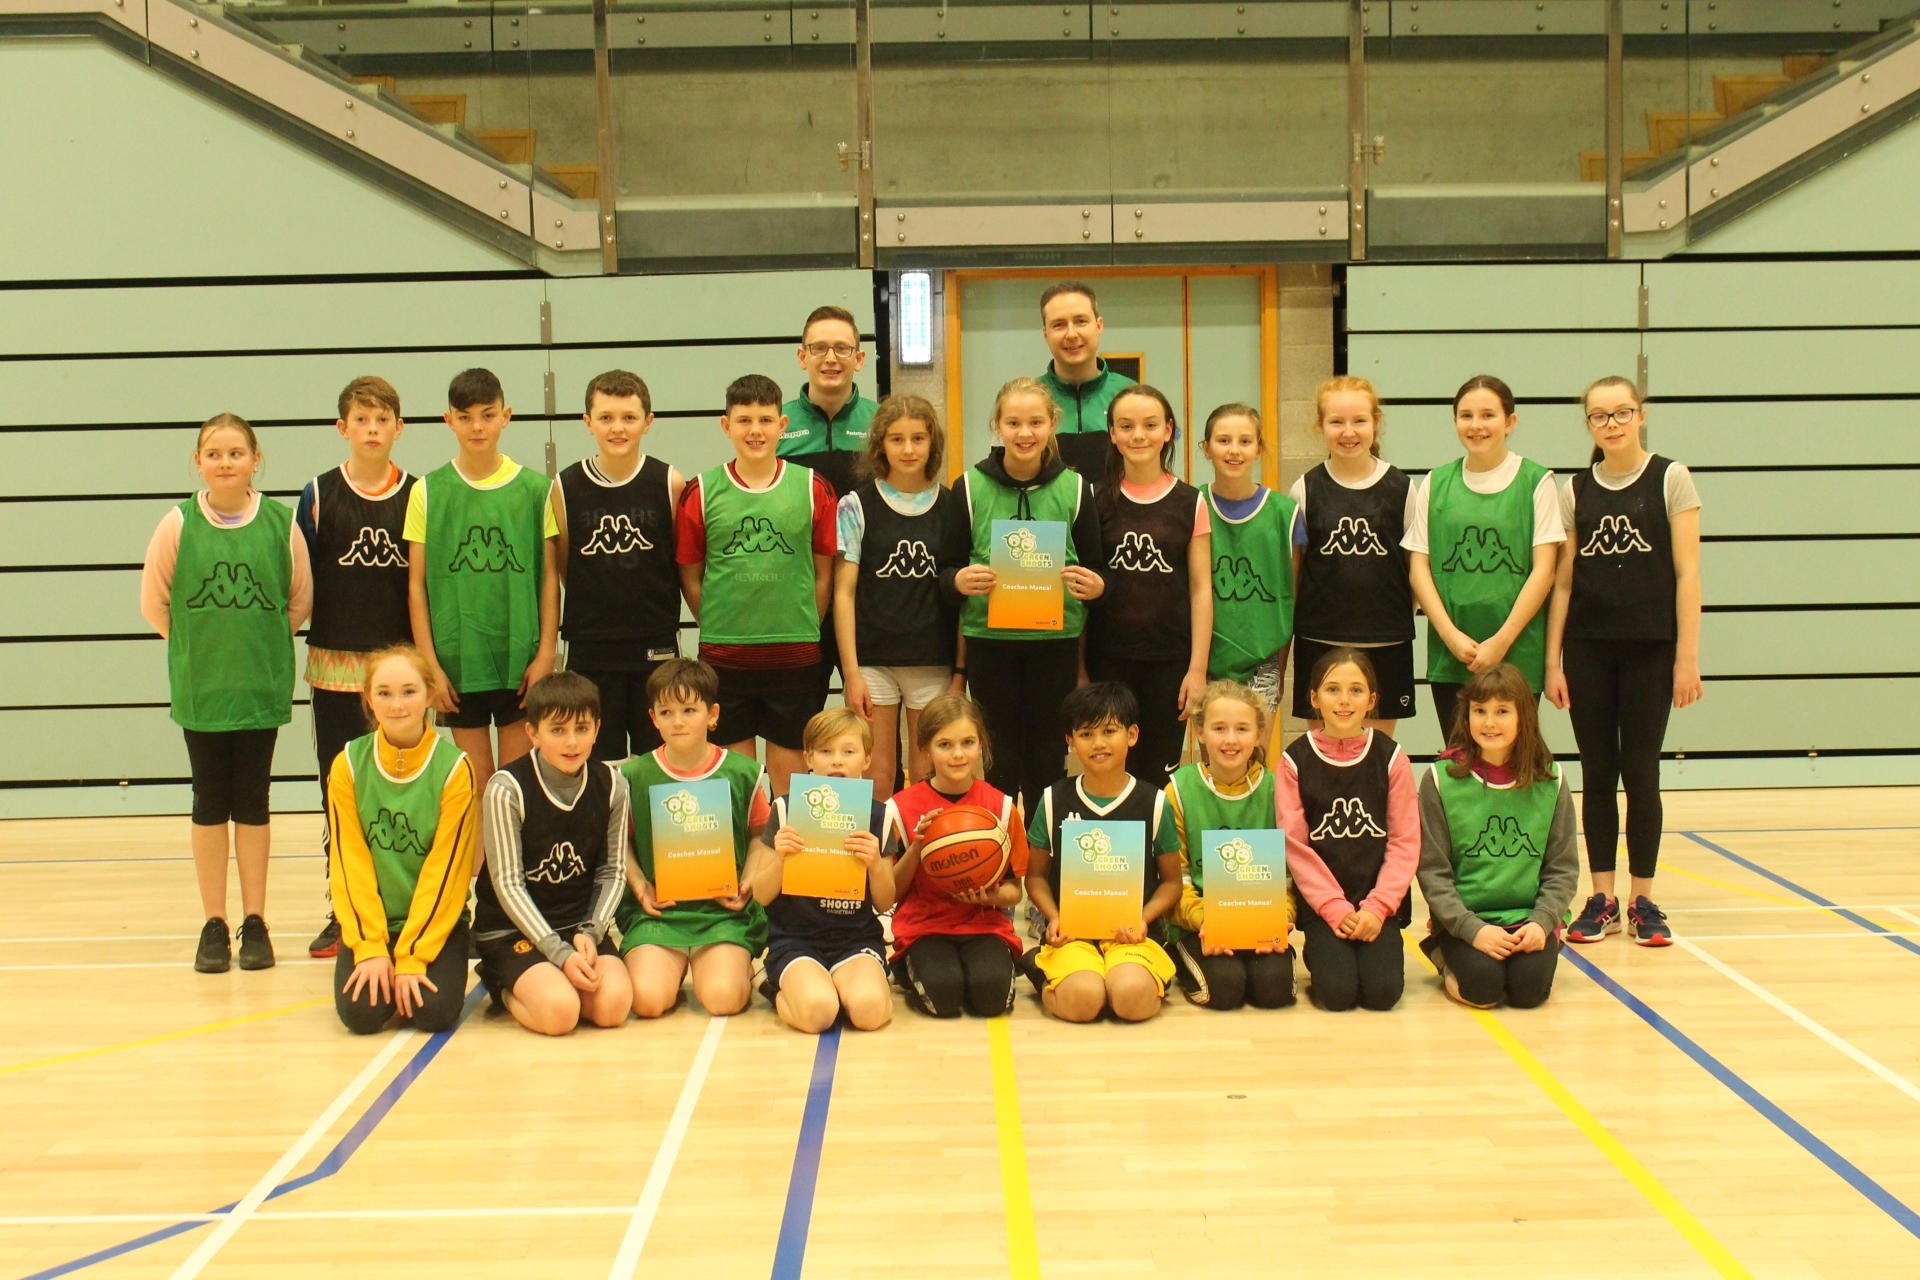 Children from local clubs and schools in Letterkenny in attendance at today's Green Shoots launch with Basketball Ireland Development Officers, Paul Carr and Niall McDermott.